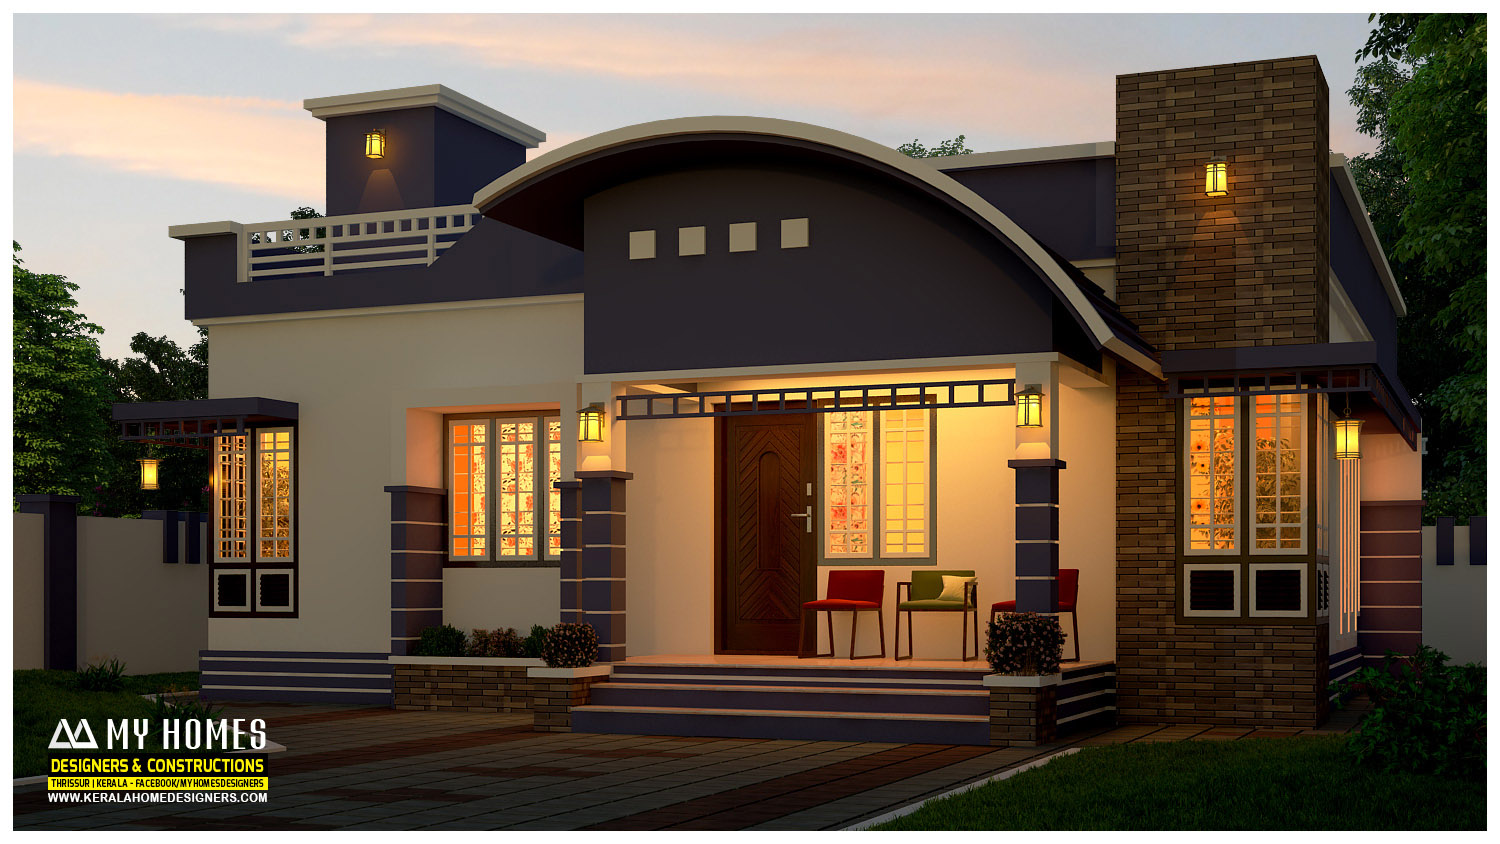 Low budget kerala home designers constructions company Low cost interior design for homes in kerala